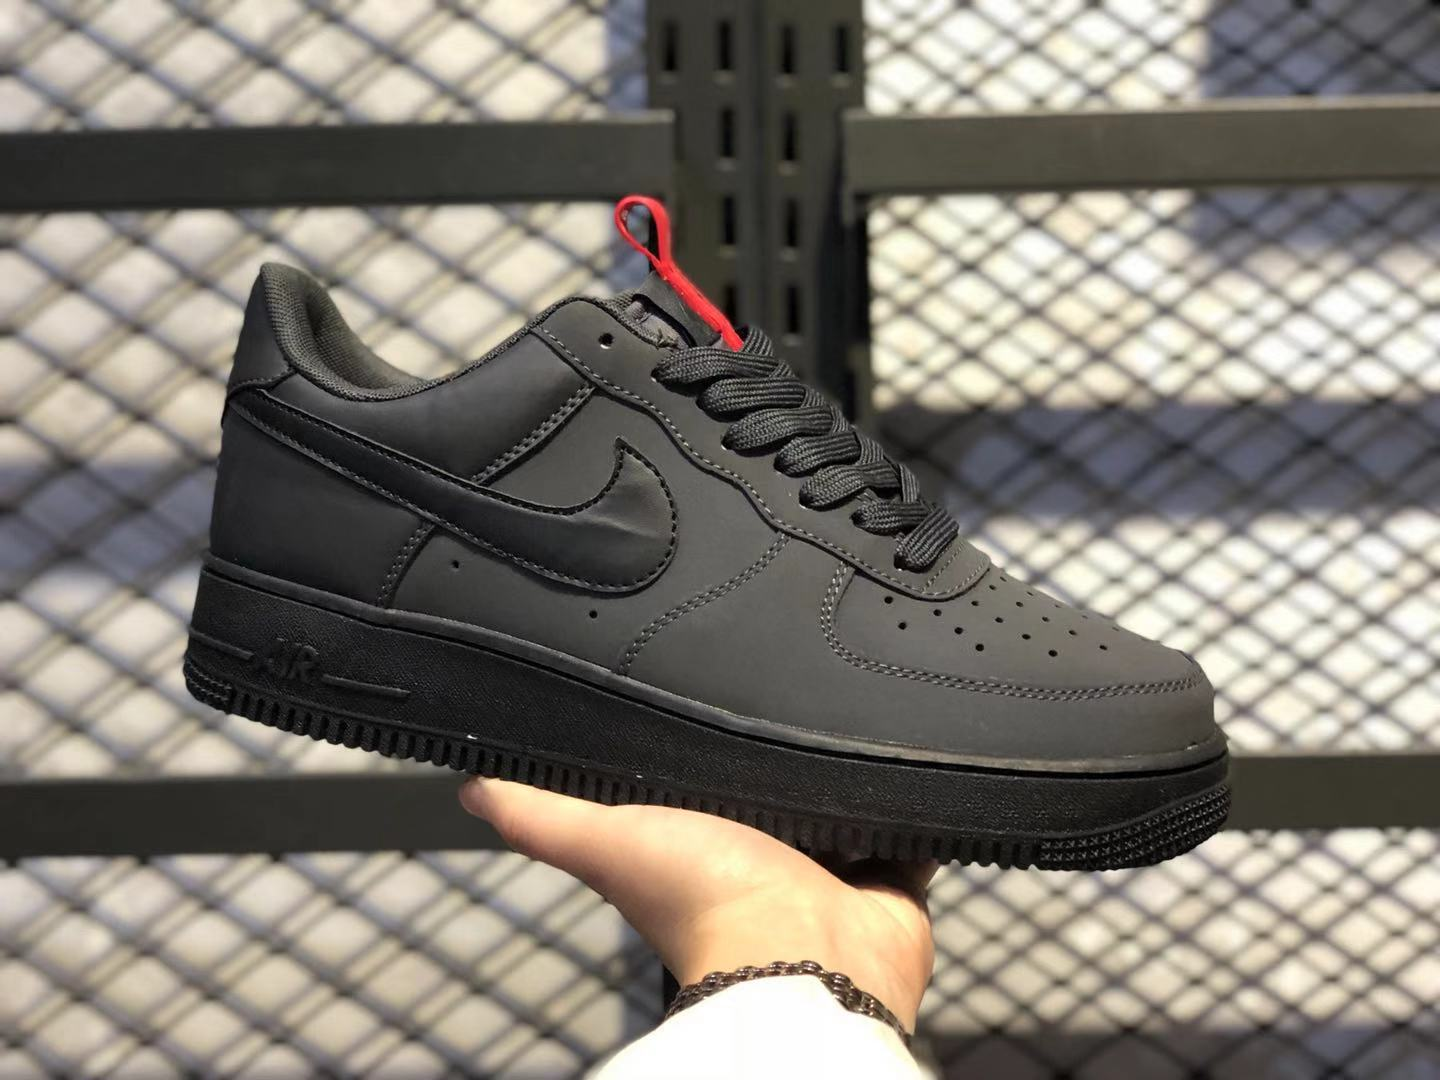 Nike Air Force 1 Low Black/Anthracite-Red Men's Running Shoes Hot Sale